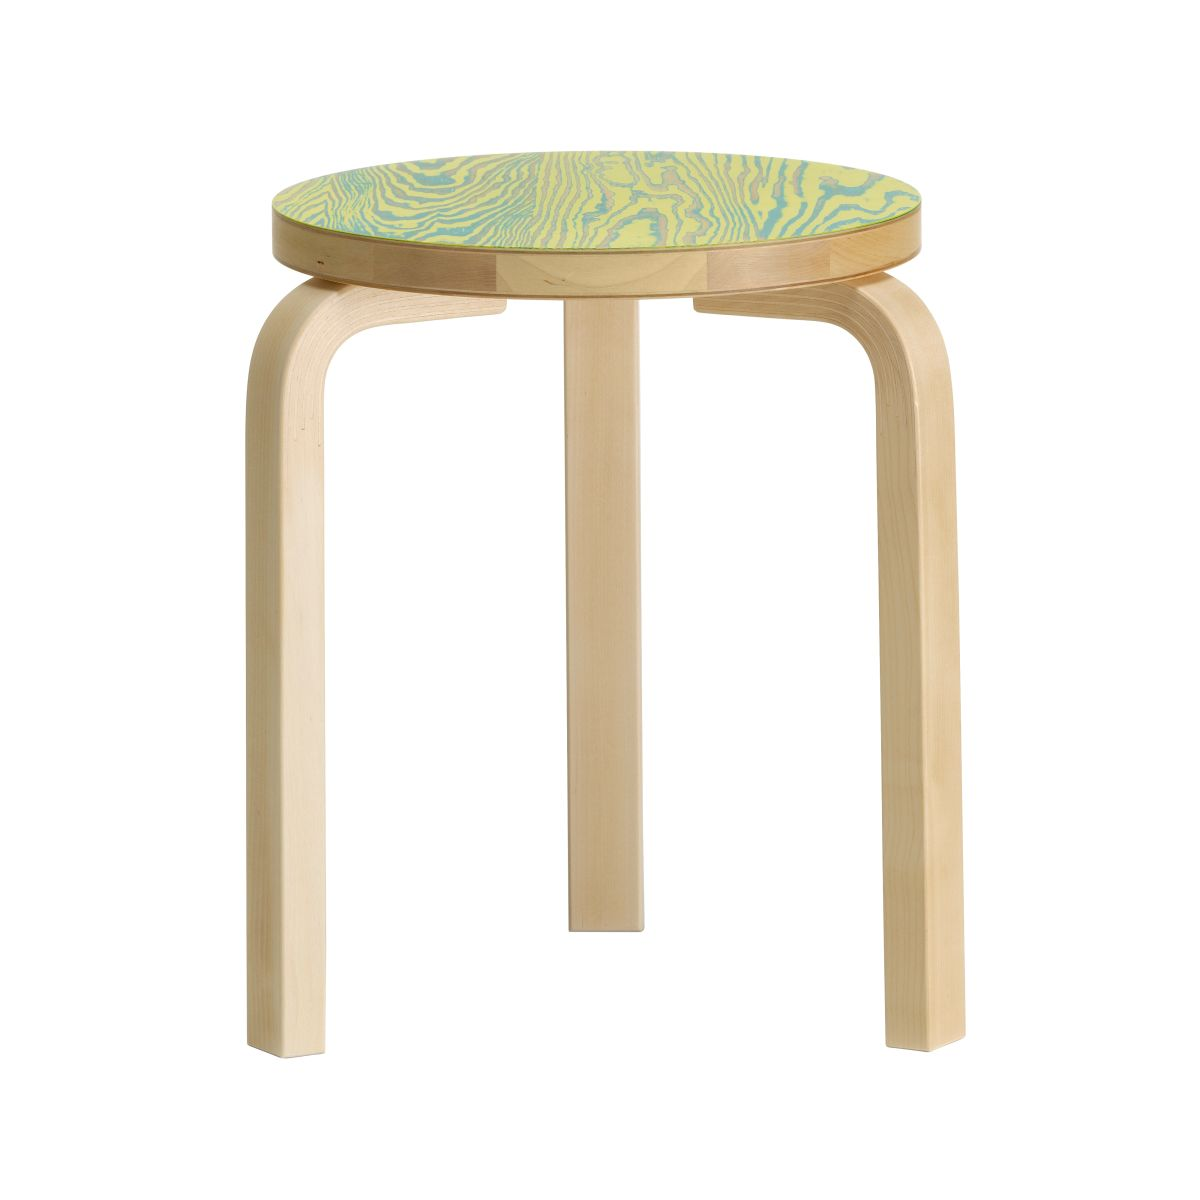 Stool-60-Colo Ring-green-yellow_F-2665034